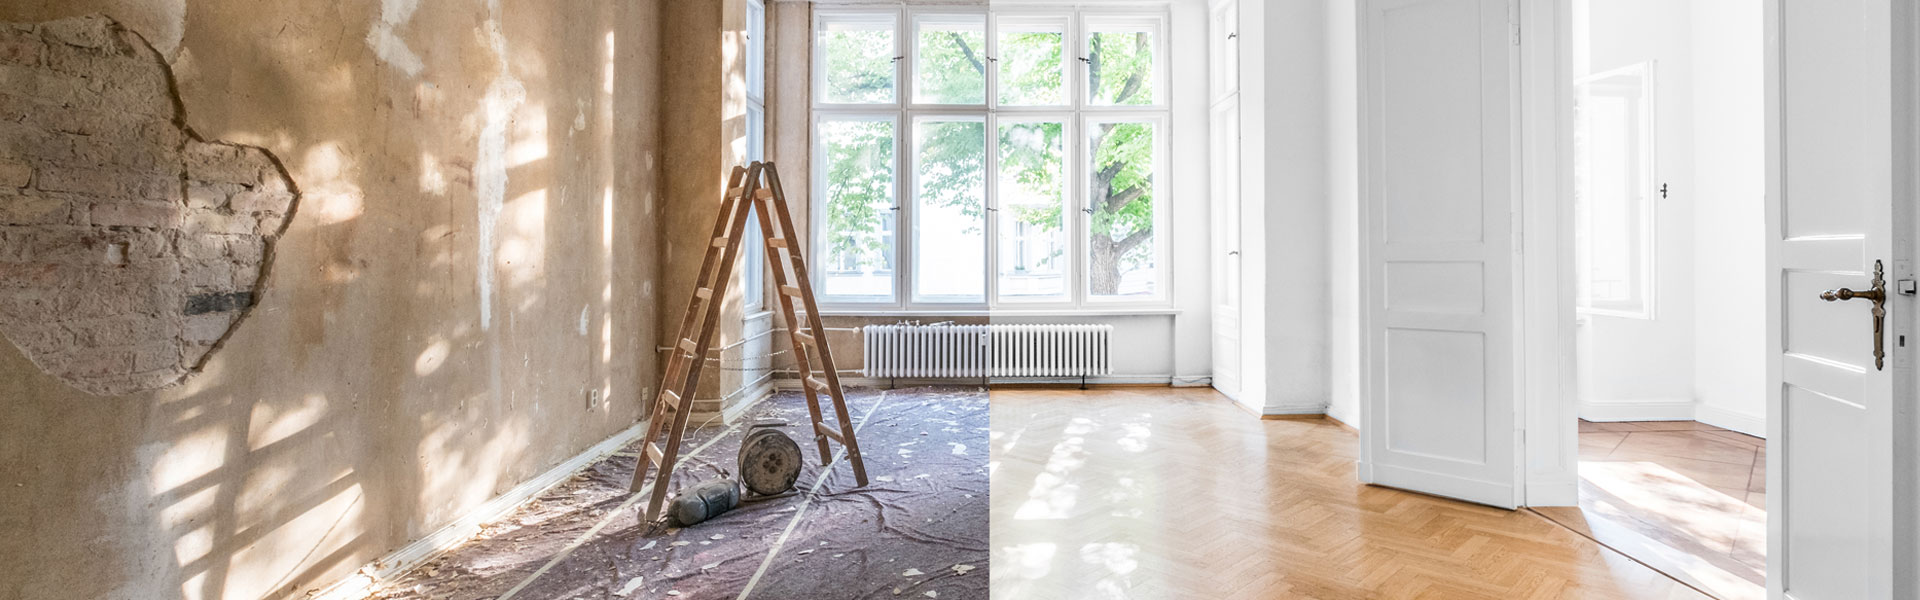 House Renovations Example